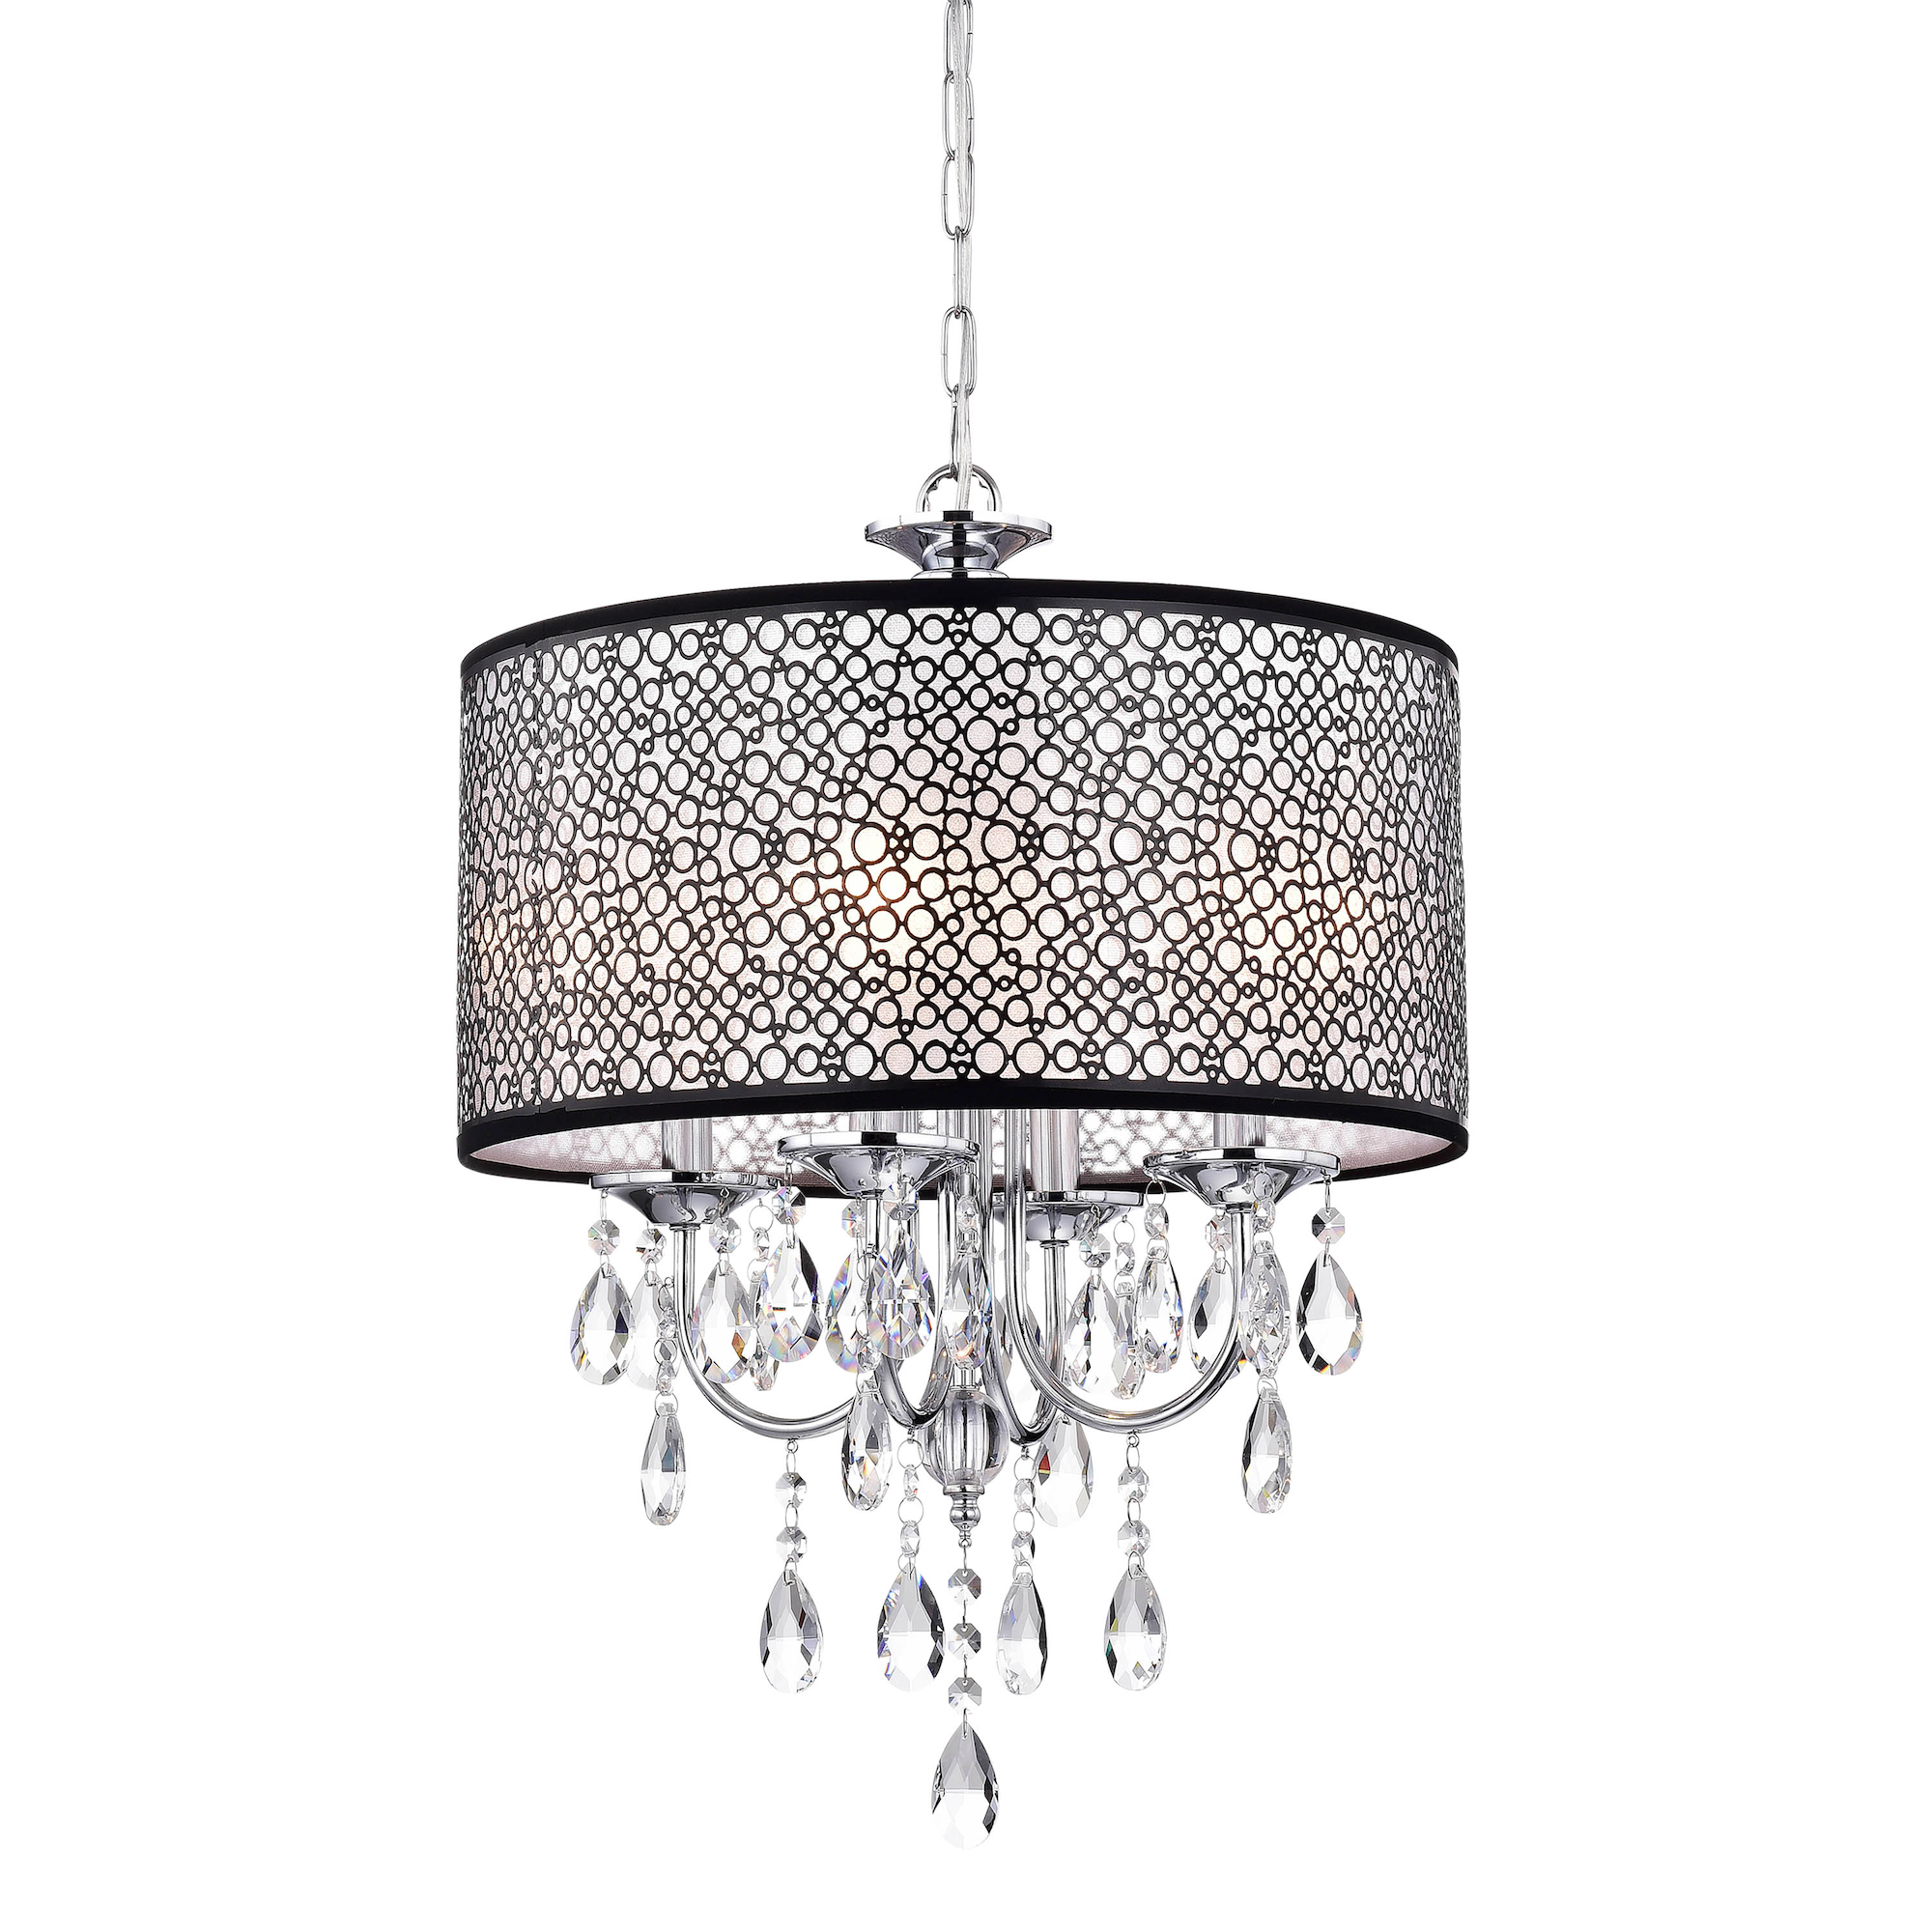 Greenville Mineva 4-light Drum Chandelier